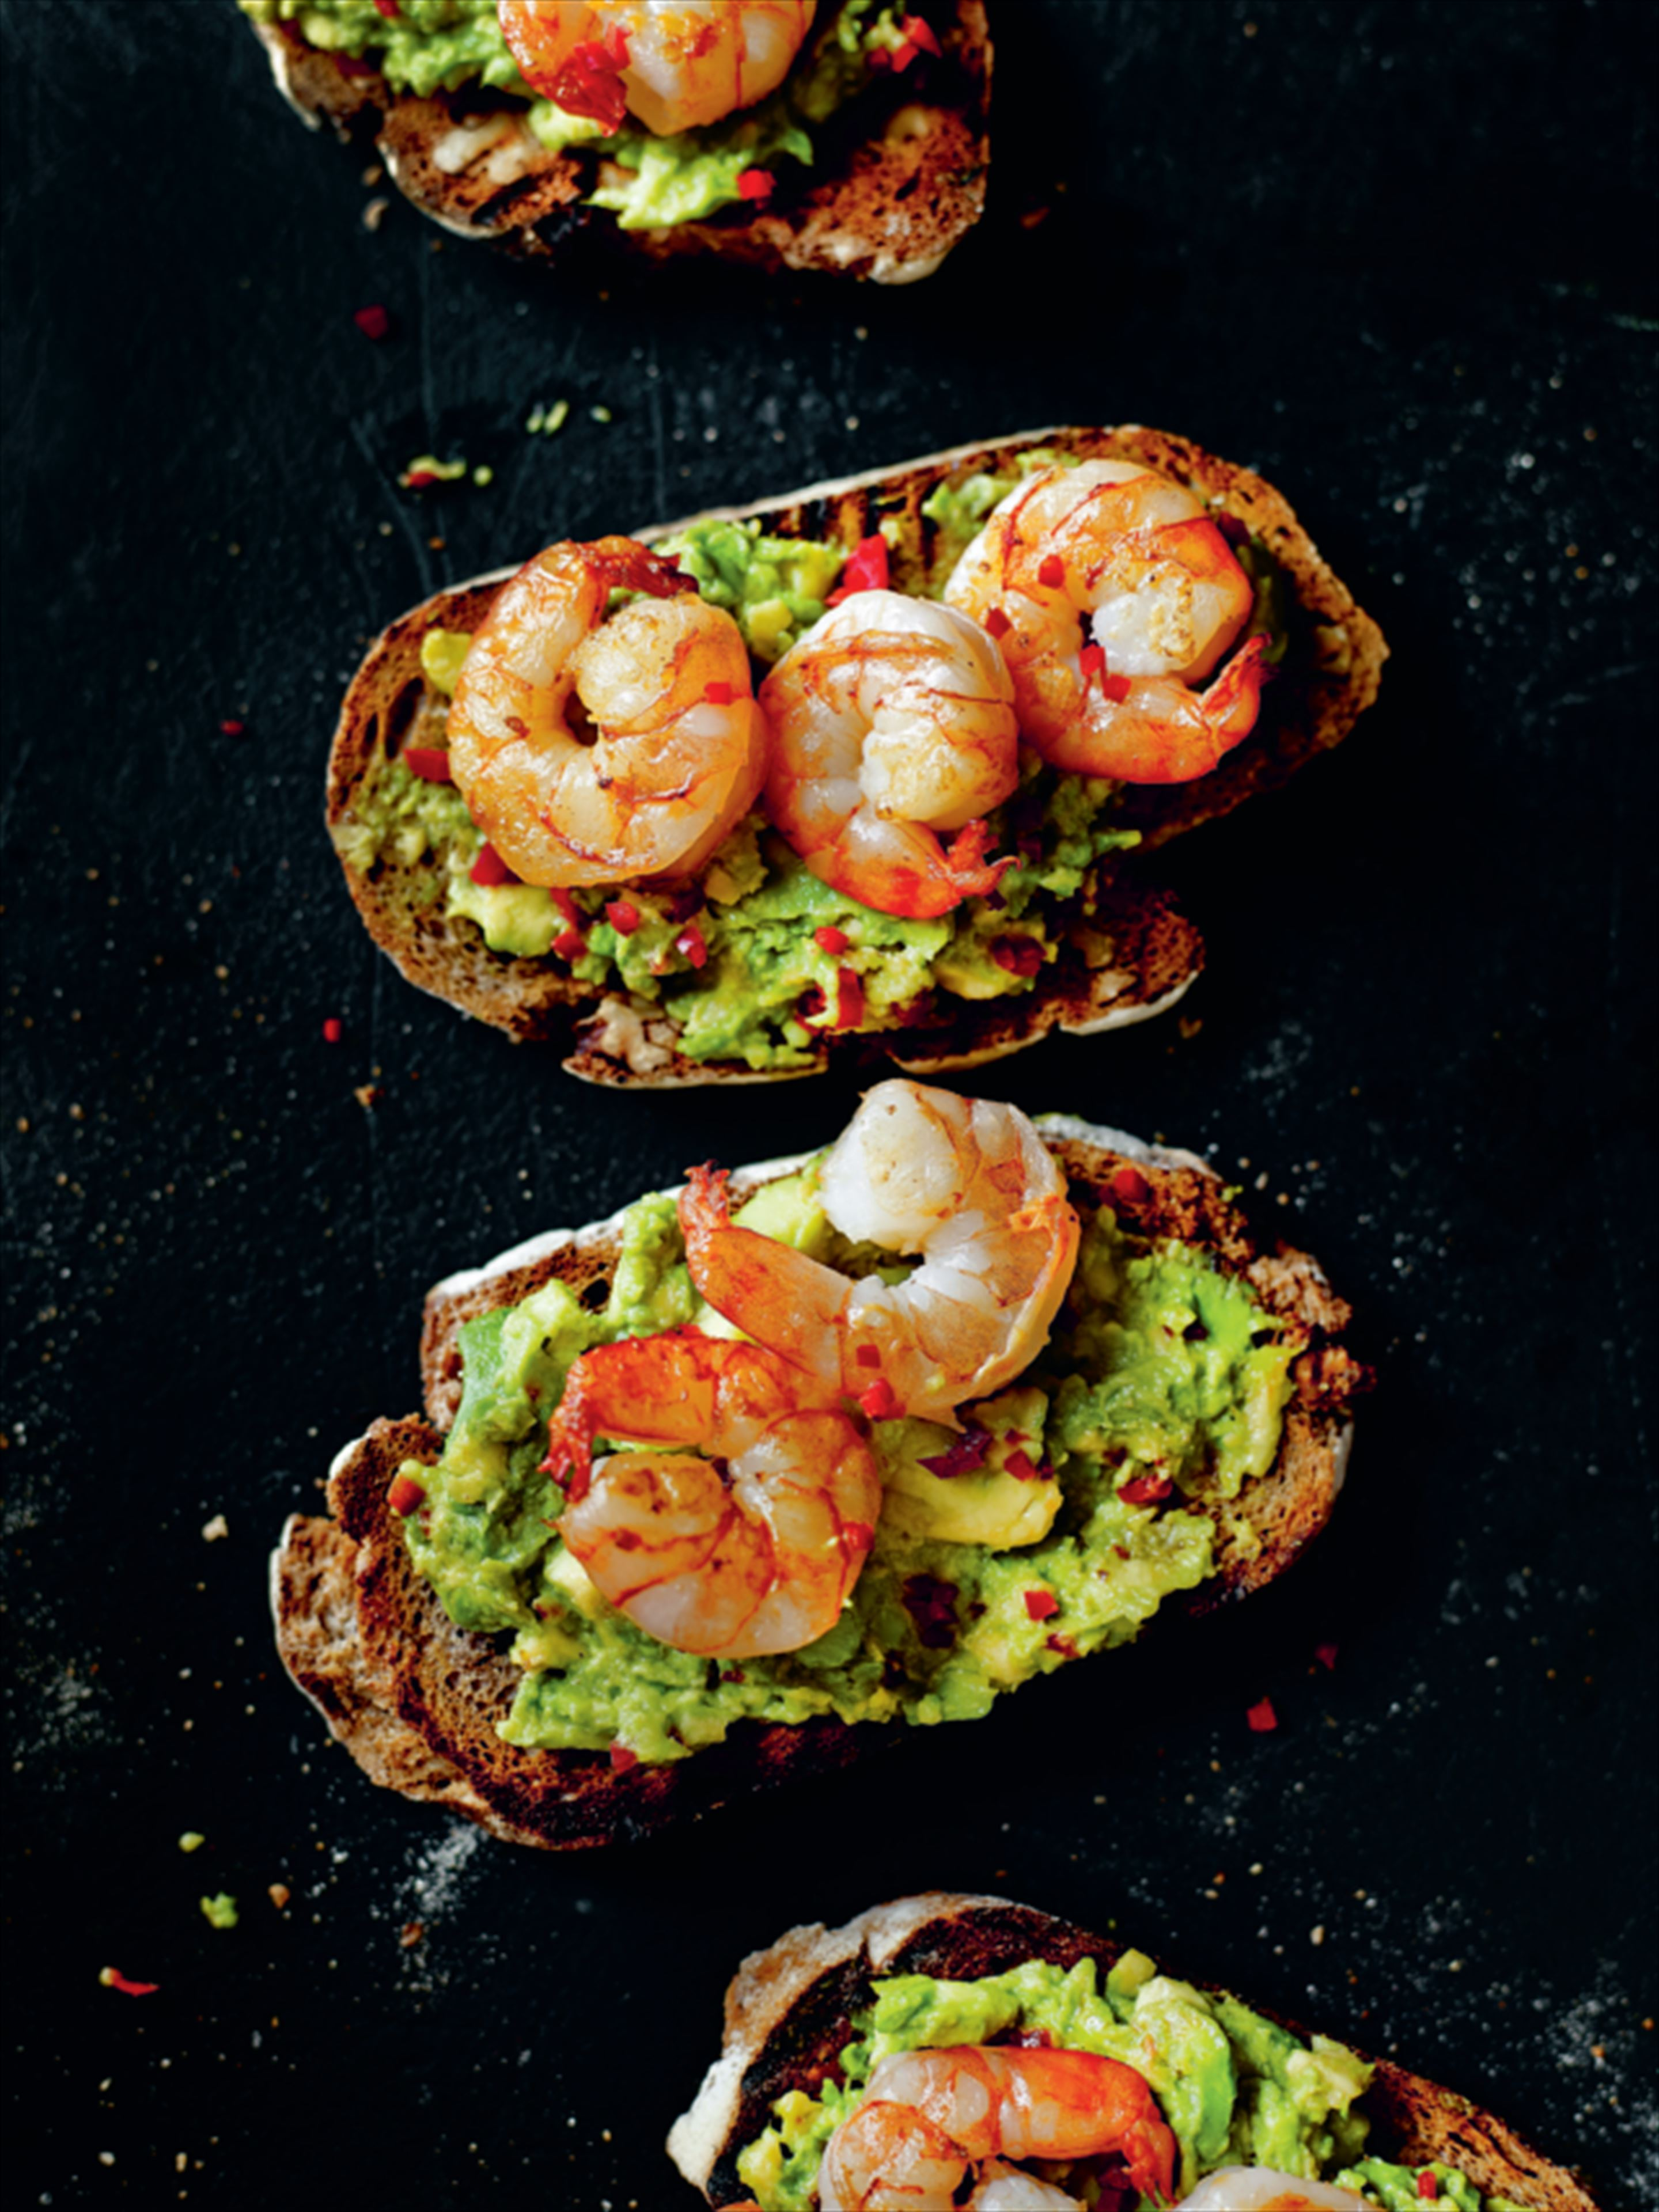 King prawn and guacamole open sandwich